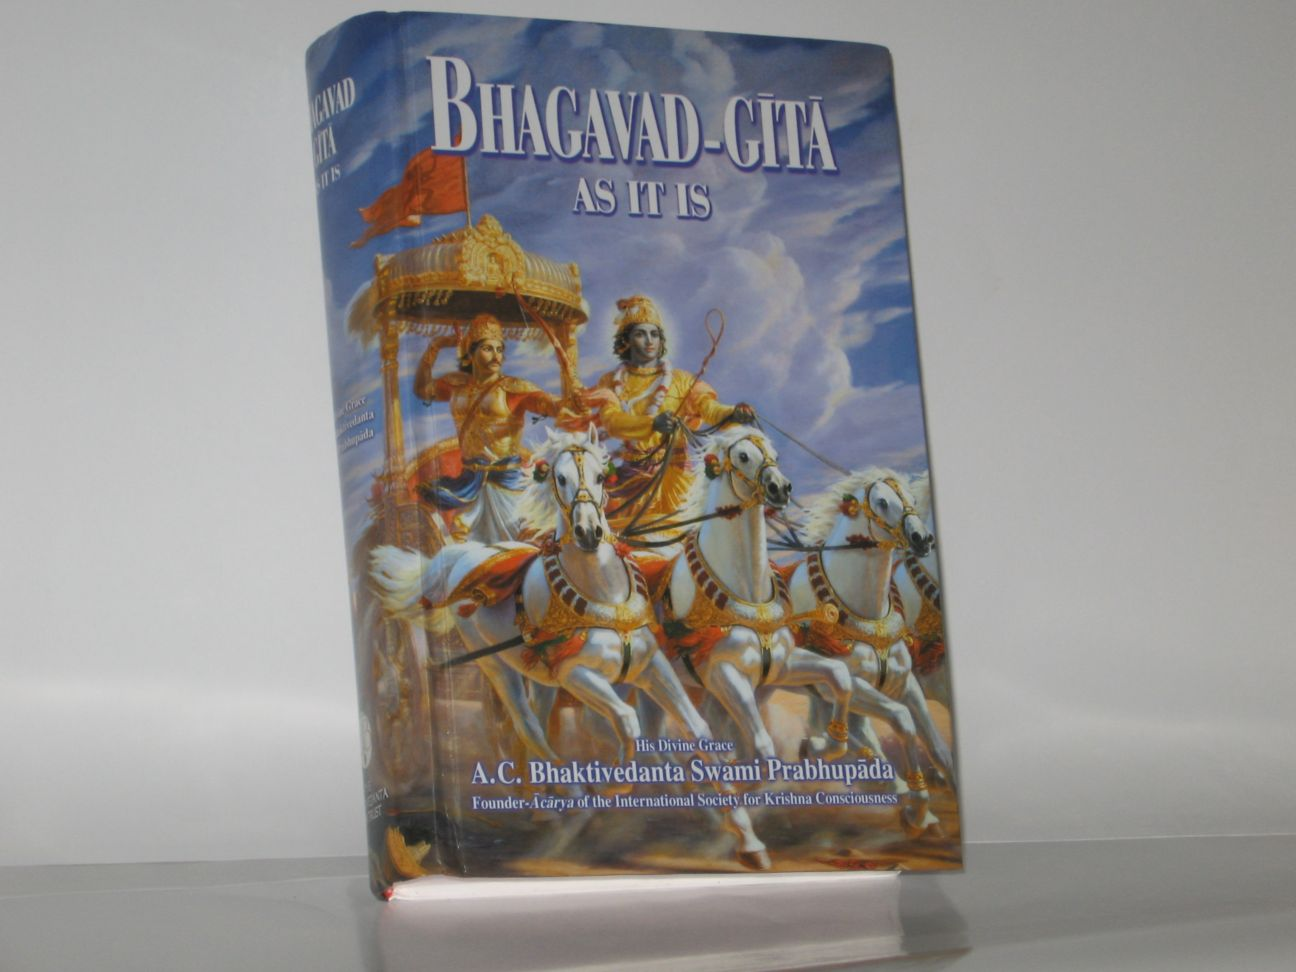 Bhagavad-gita-wallpapers-images-stills-pictures-www.nowlix.com-1.jpg